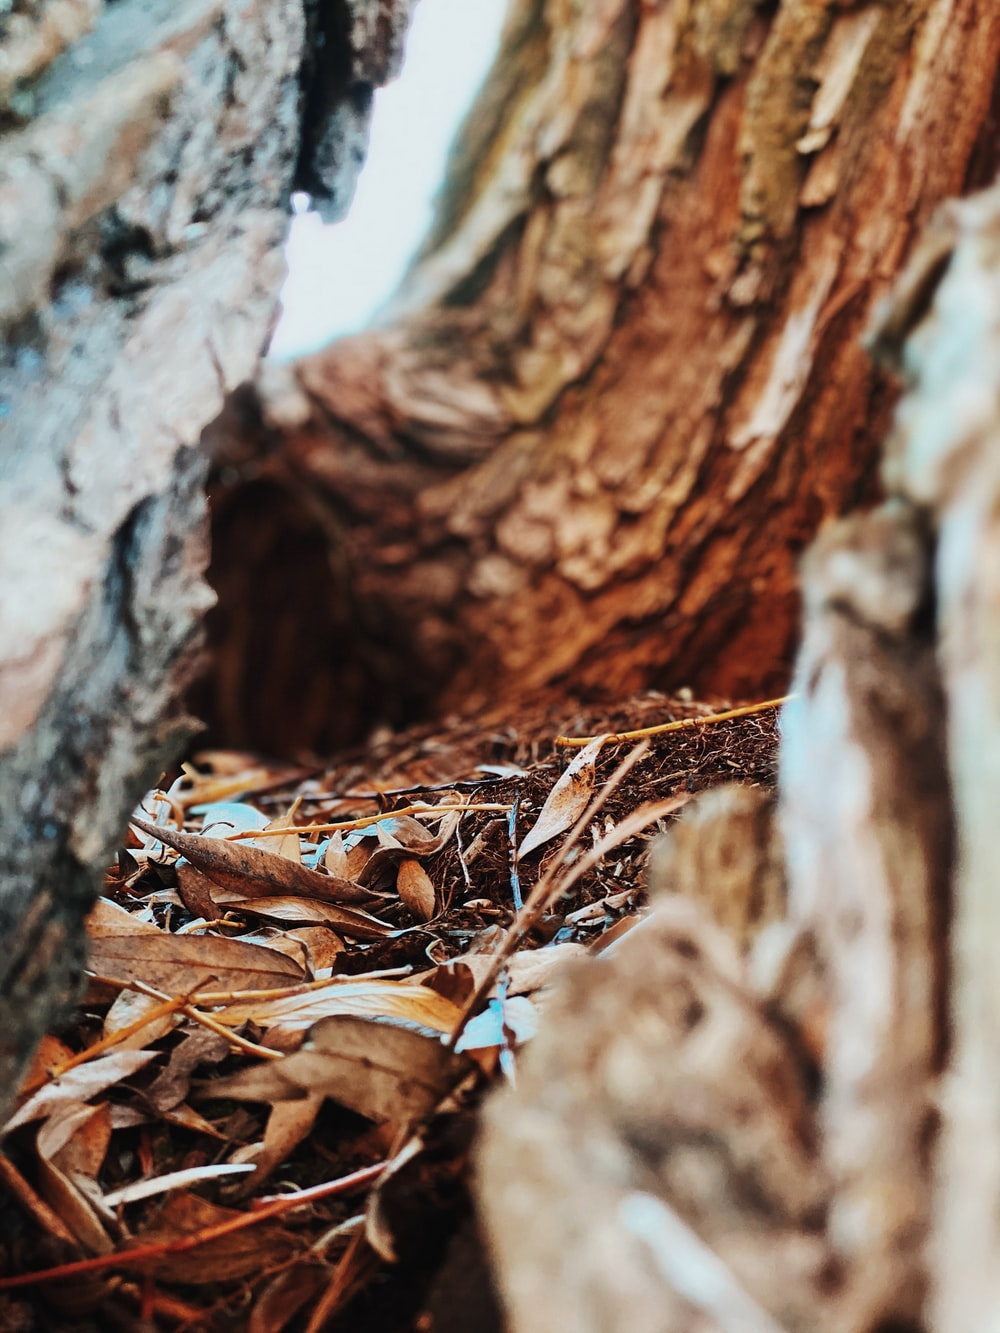 withered leaves inside wood cut